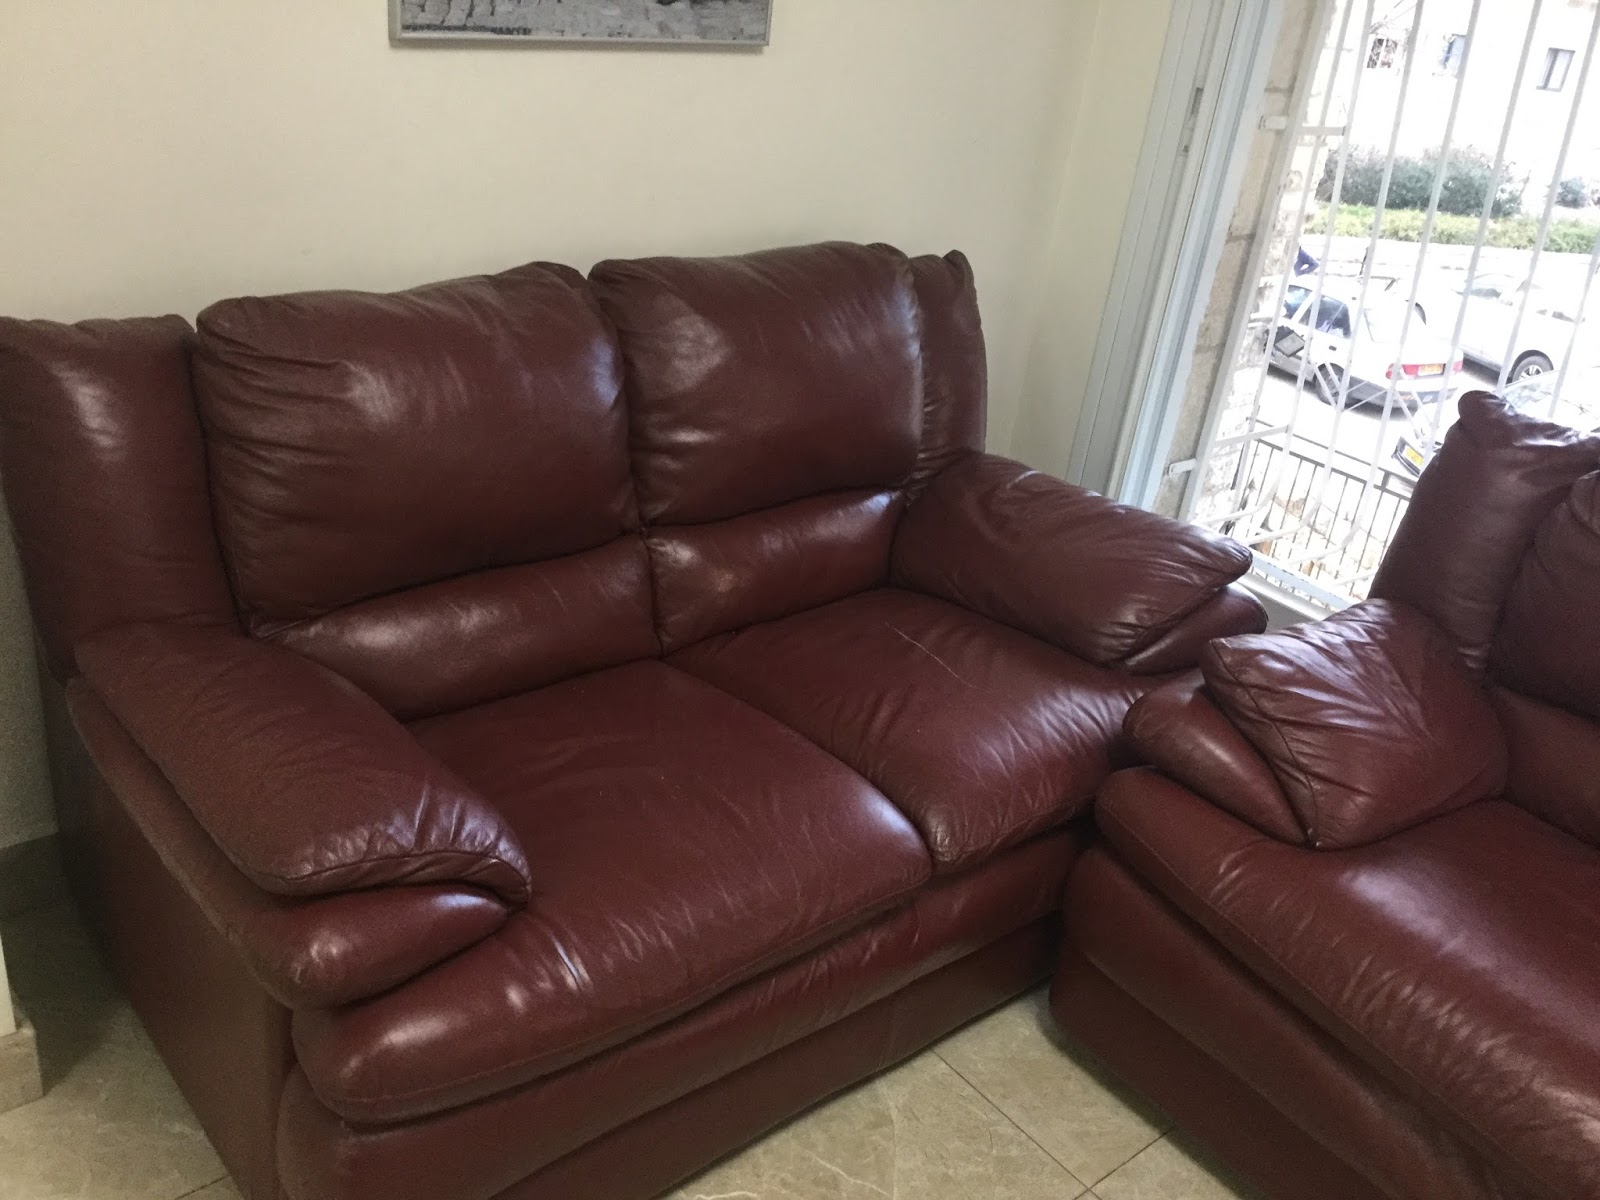 2nd hand furniture highest quality lowest prices email us